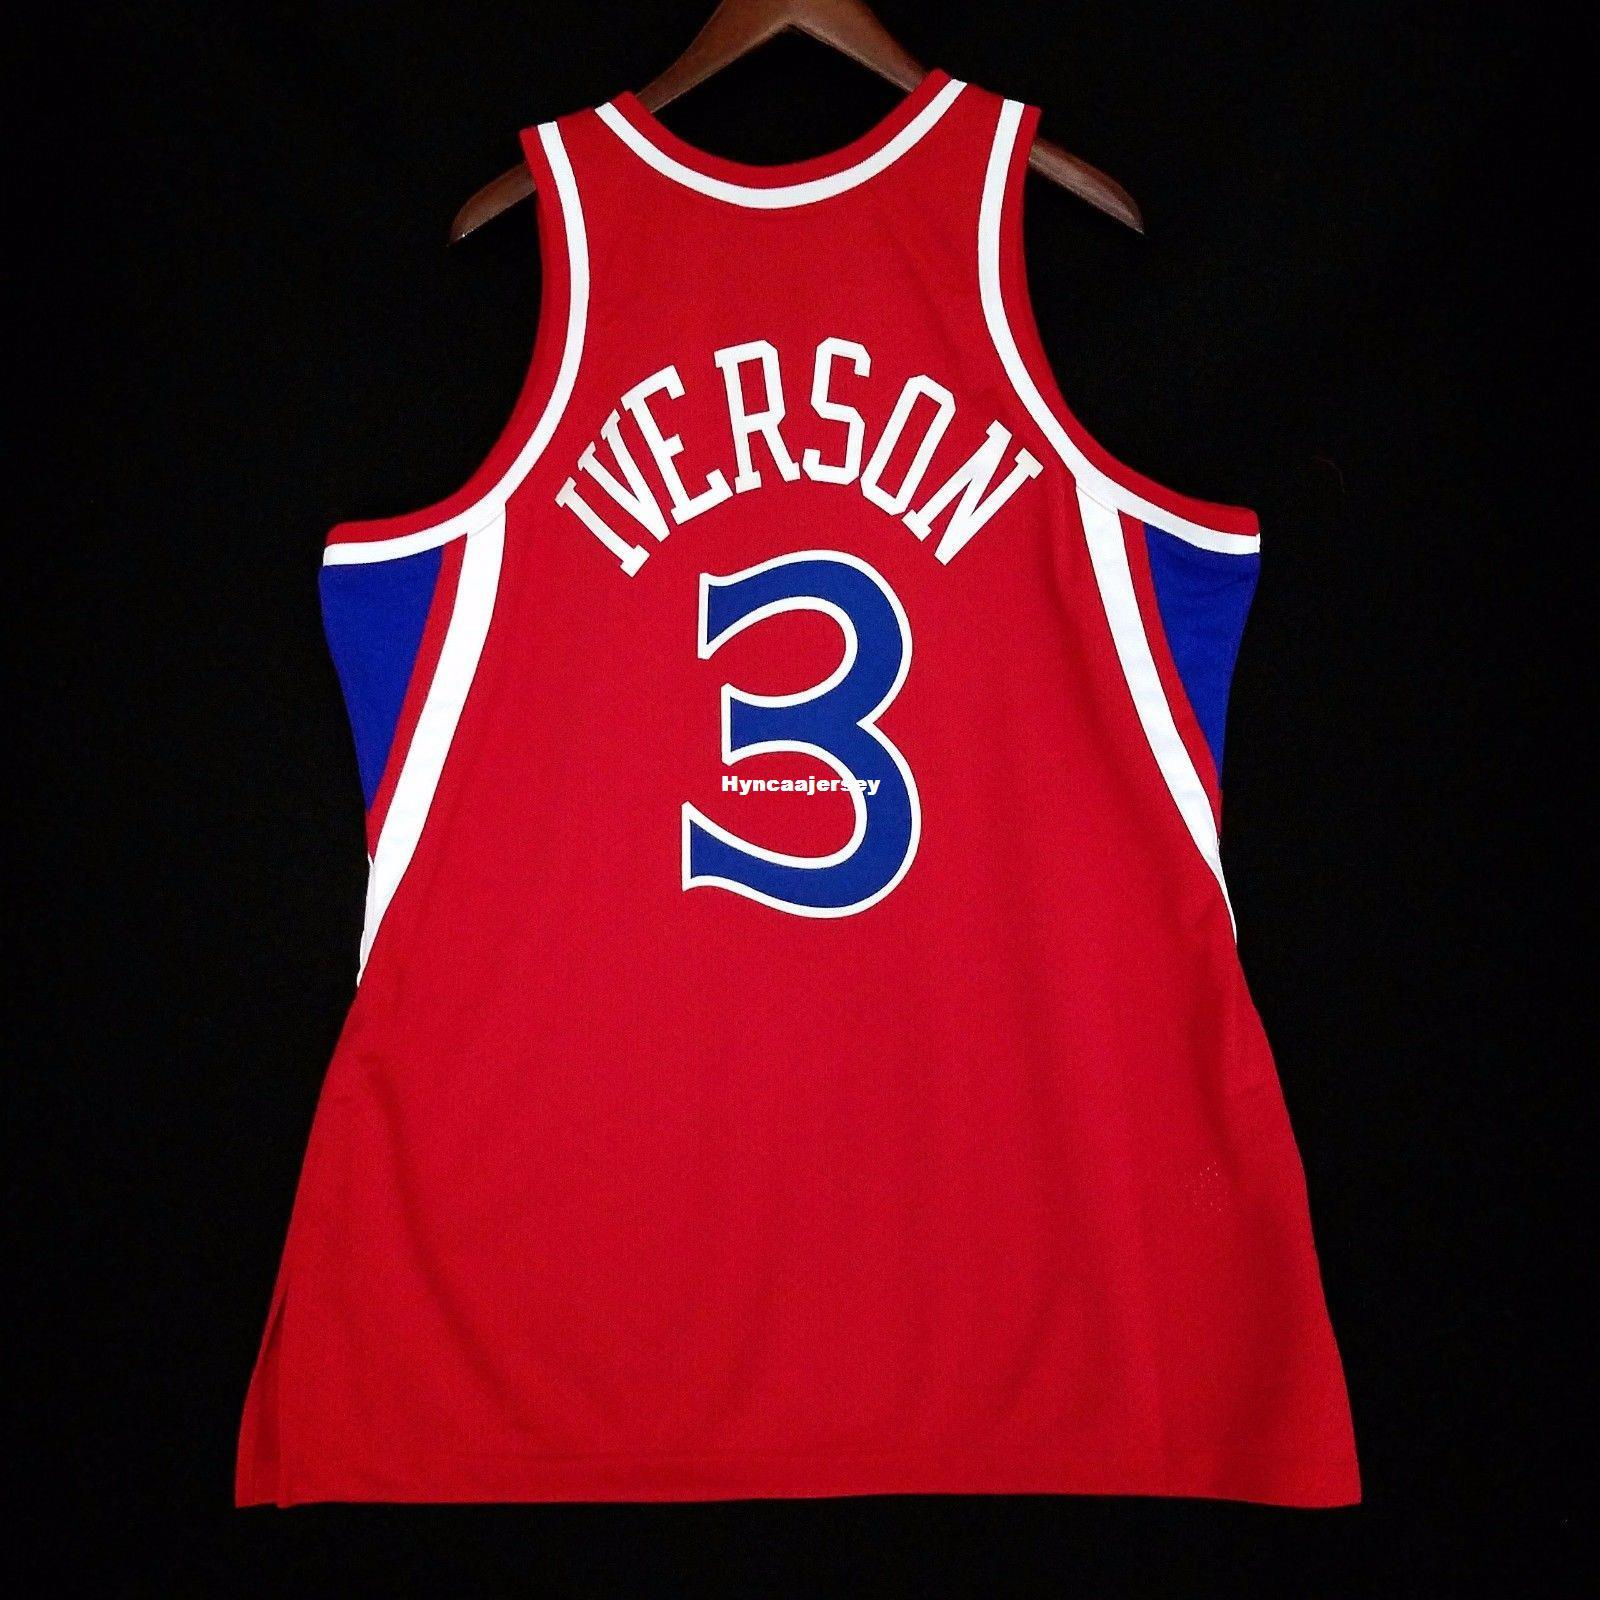 on sale 99406 ffb7b 100% Stitched Mitchell & Ness Allen Iverson #3 wholesale Red Jersey Mens  Vest Size XS-6XL Stitched basketball Jerseys Ncaa